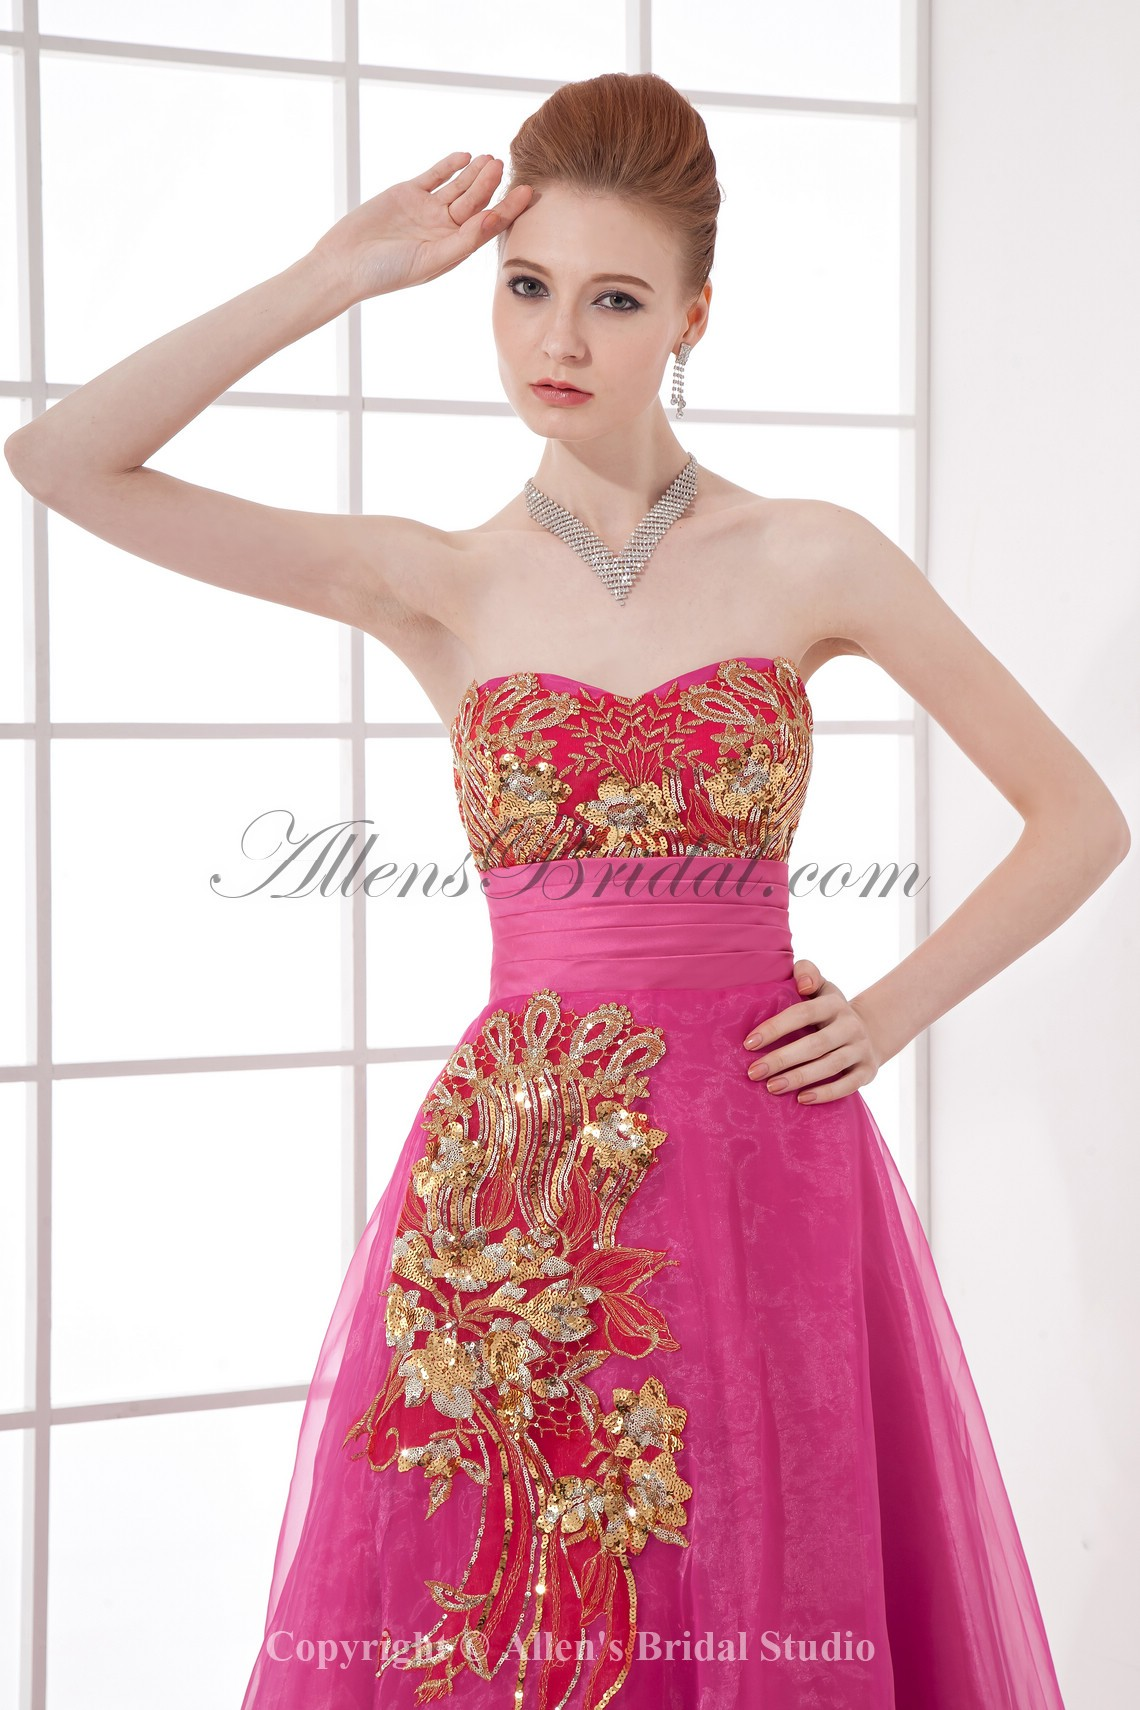 /105-834/organza-sweetheart-neckline-a-line-floor-length-embroidered-prom-dress.jpg